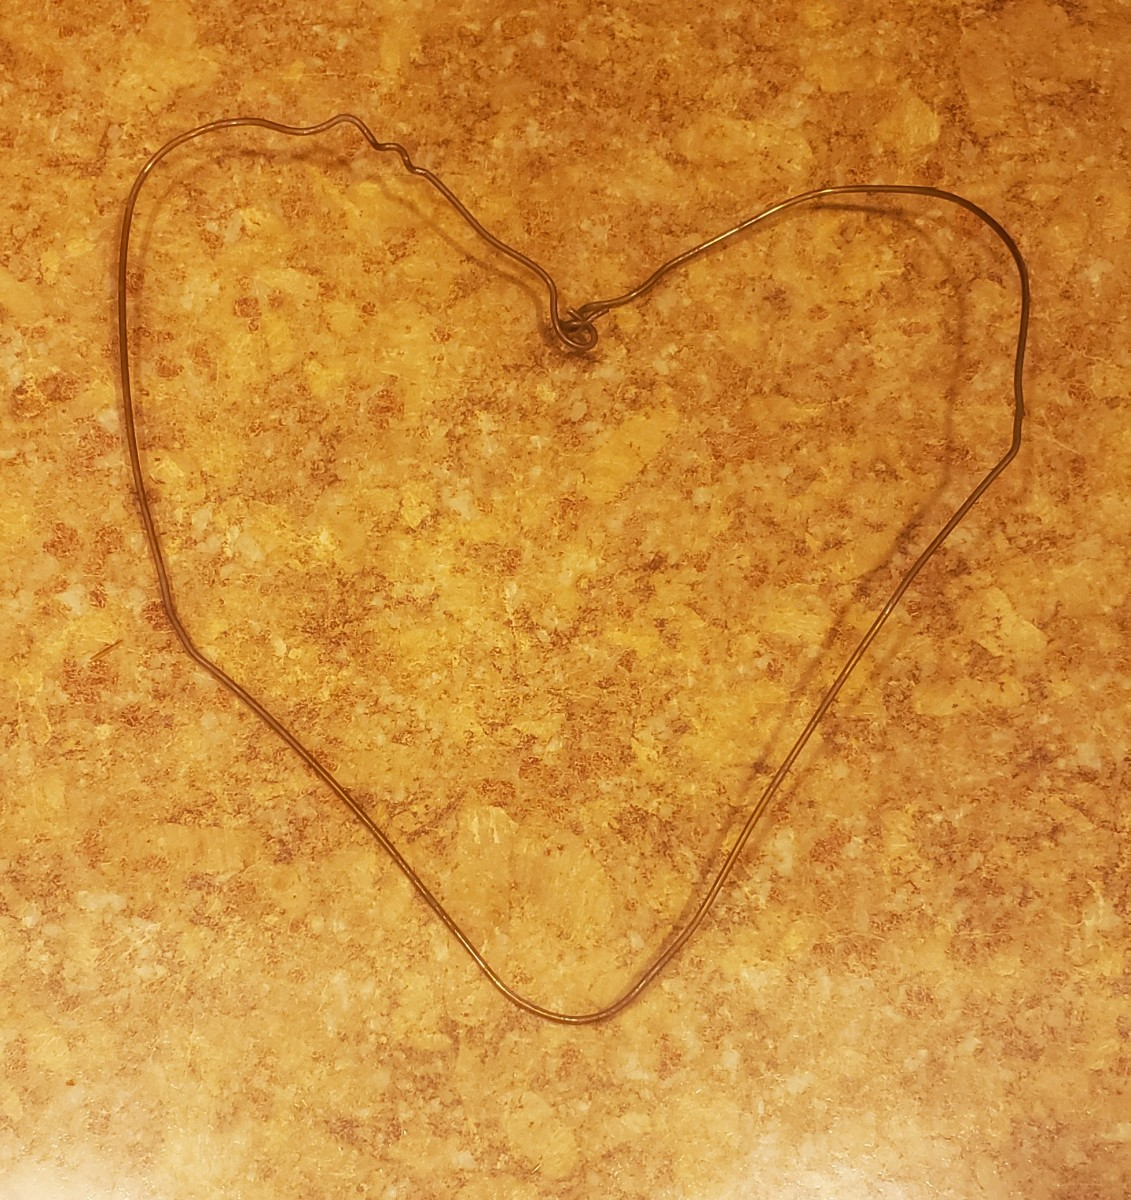 Bend your wire hanger into a heart shape.